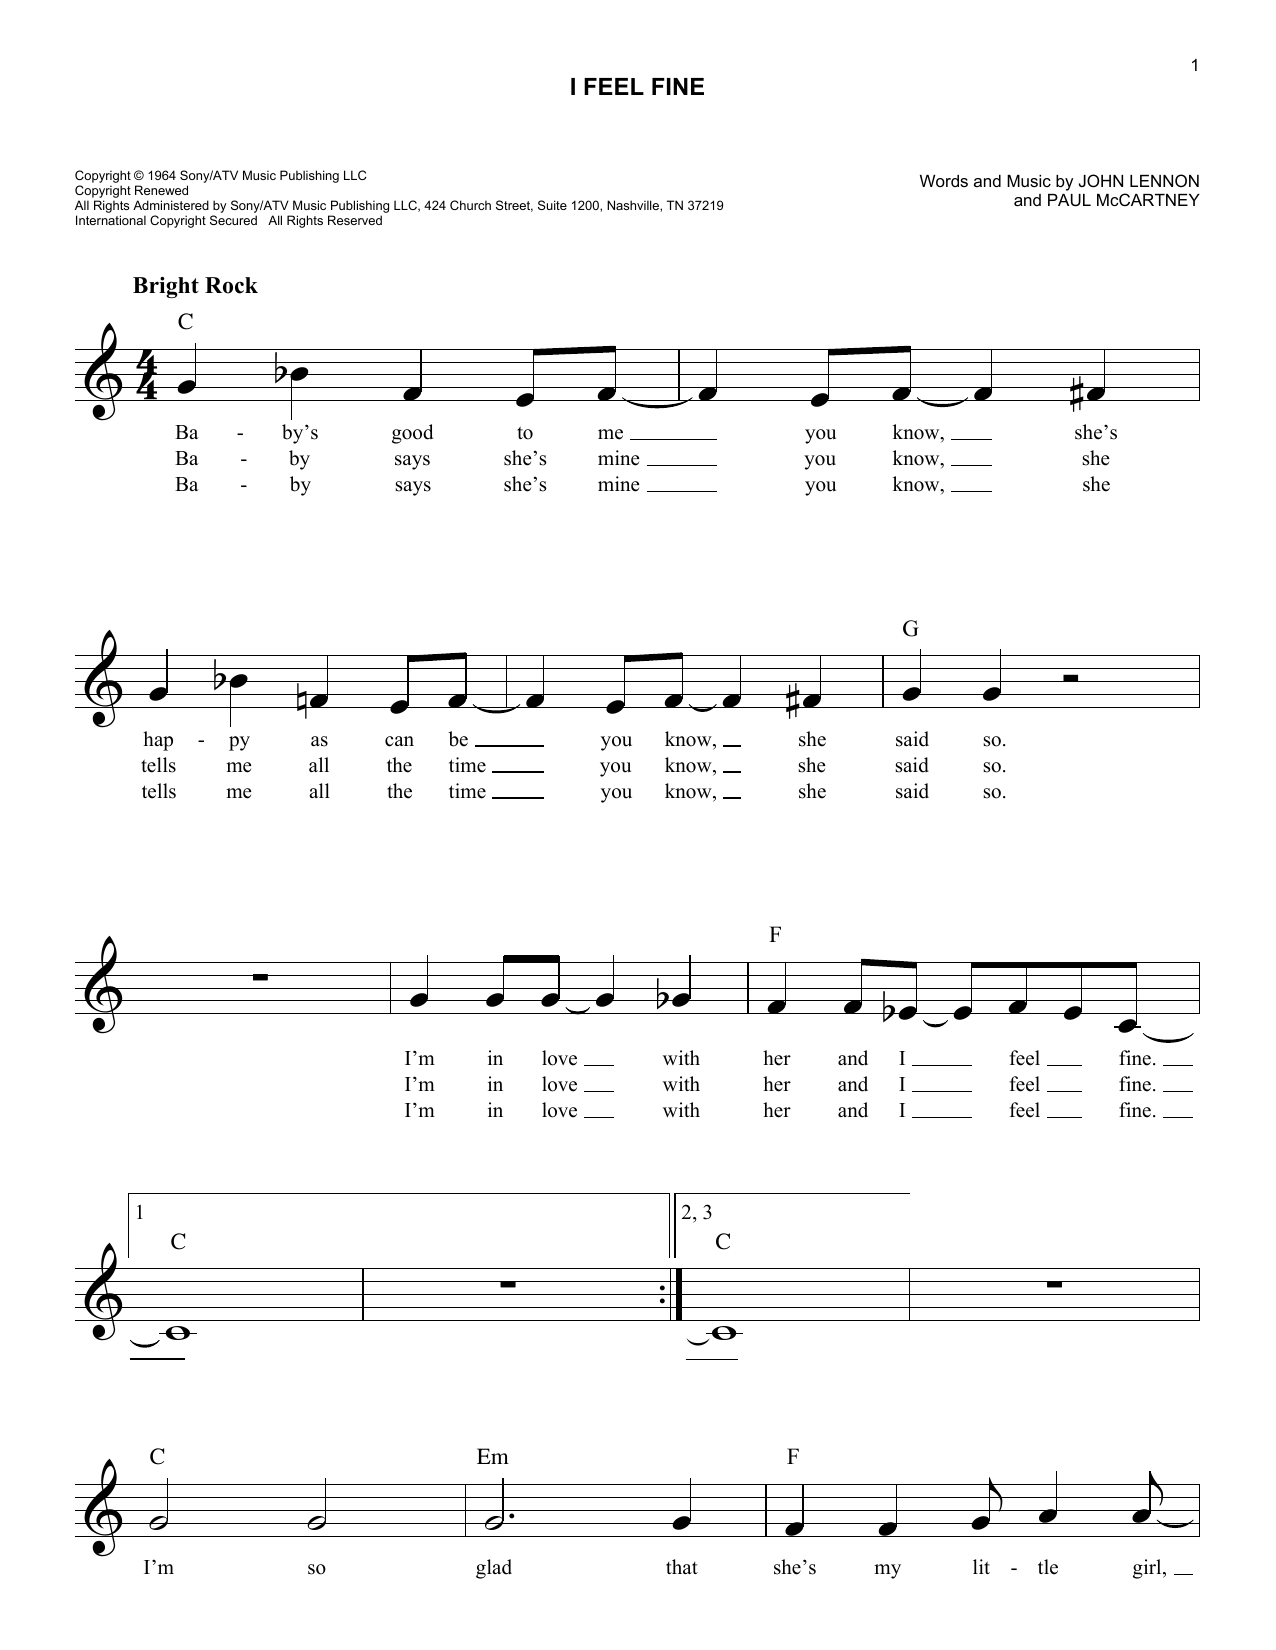 I feel fine chords by the beatles melody line lyrics chords i feel fine sheet music hexwebz Images